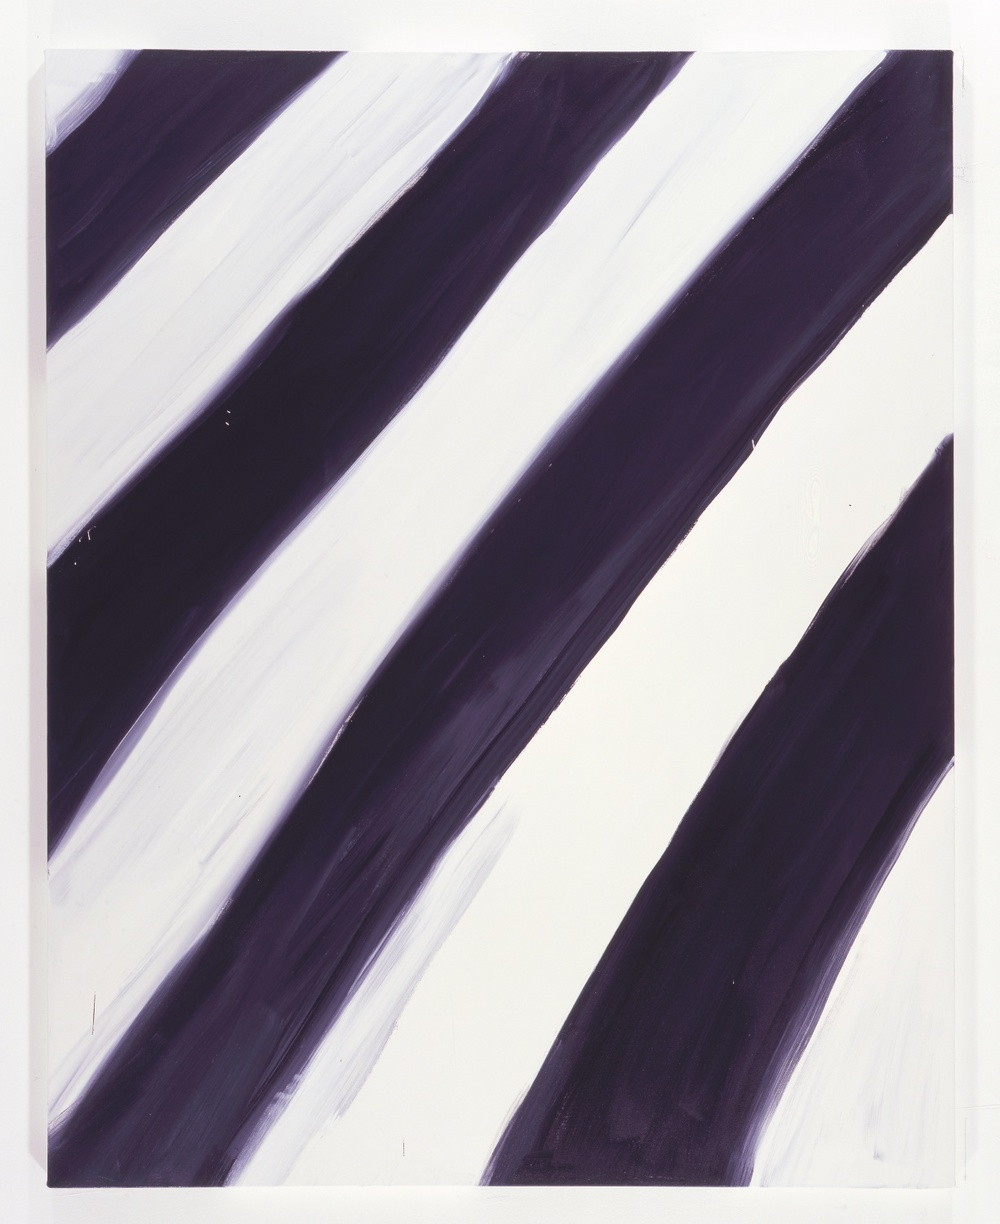 "Ann Craven Untitled (Stripe White black white 1/16/08) 2008 Oil on canvas 60"" x 48"" AC047"